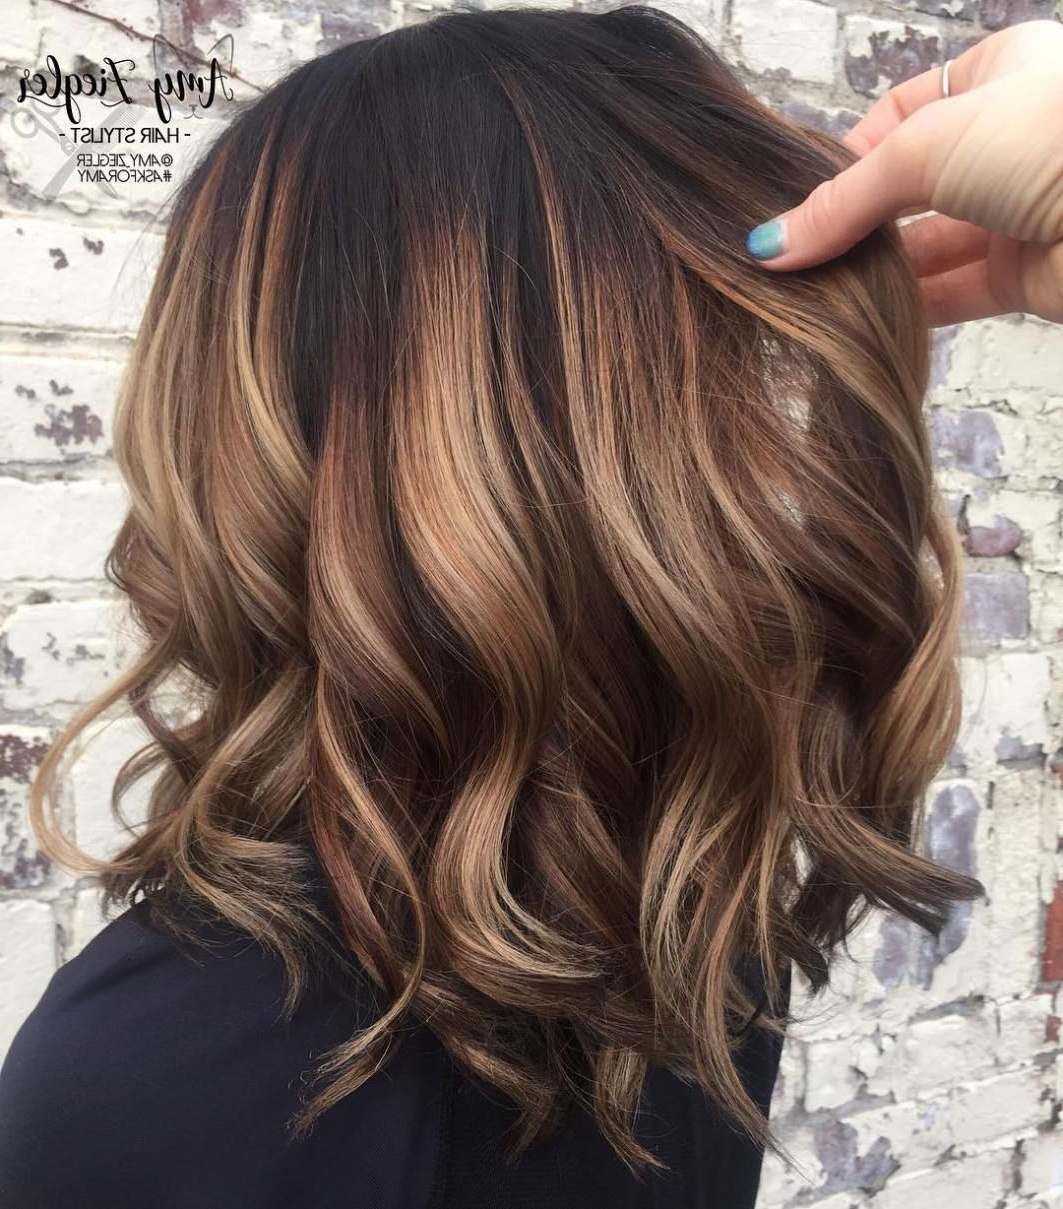 Curly Caramel Balayage Bob   Curly Hair In 2018   Pinterest   Hair Throughout Soft Brown And Caramel Wavy Bob Hairstyles (View 2 of 25)